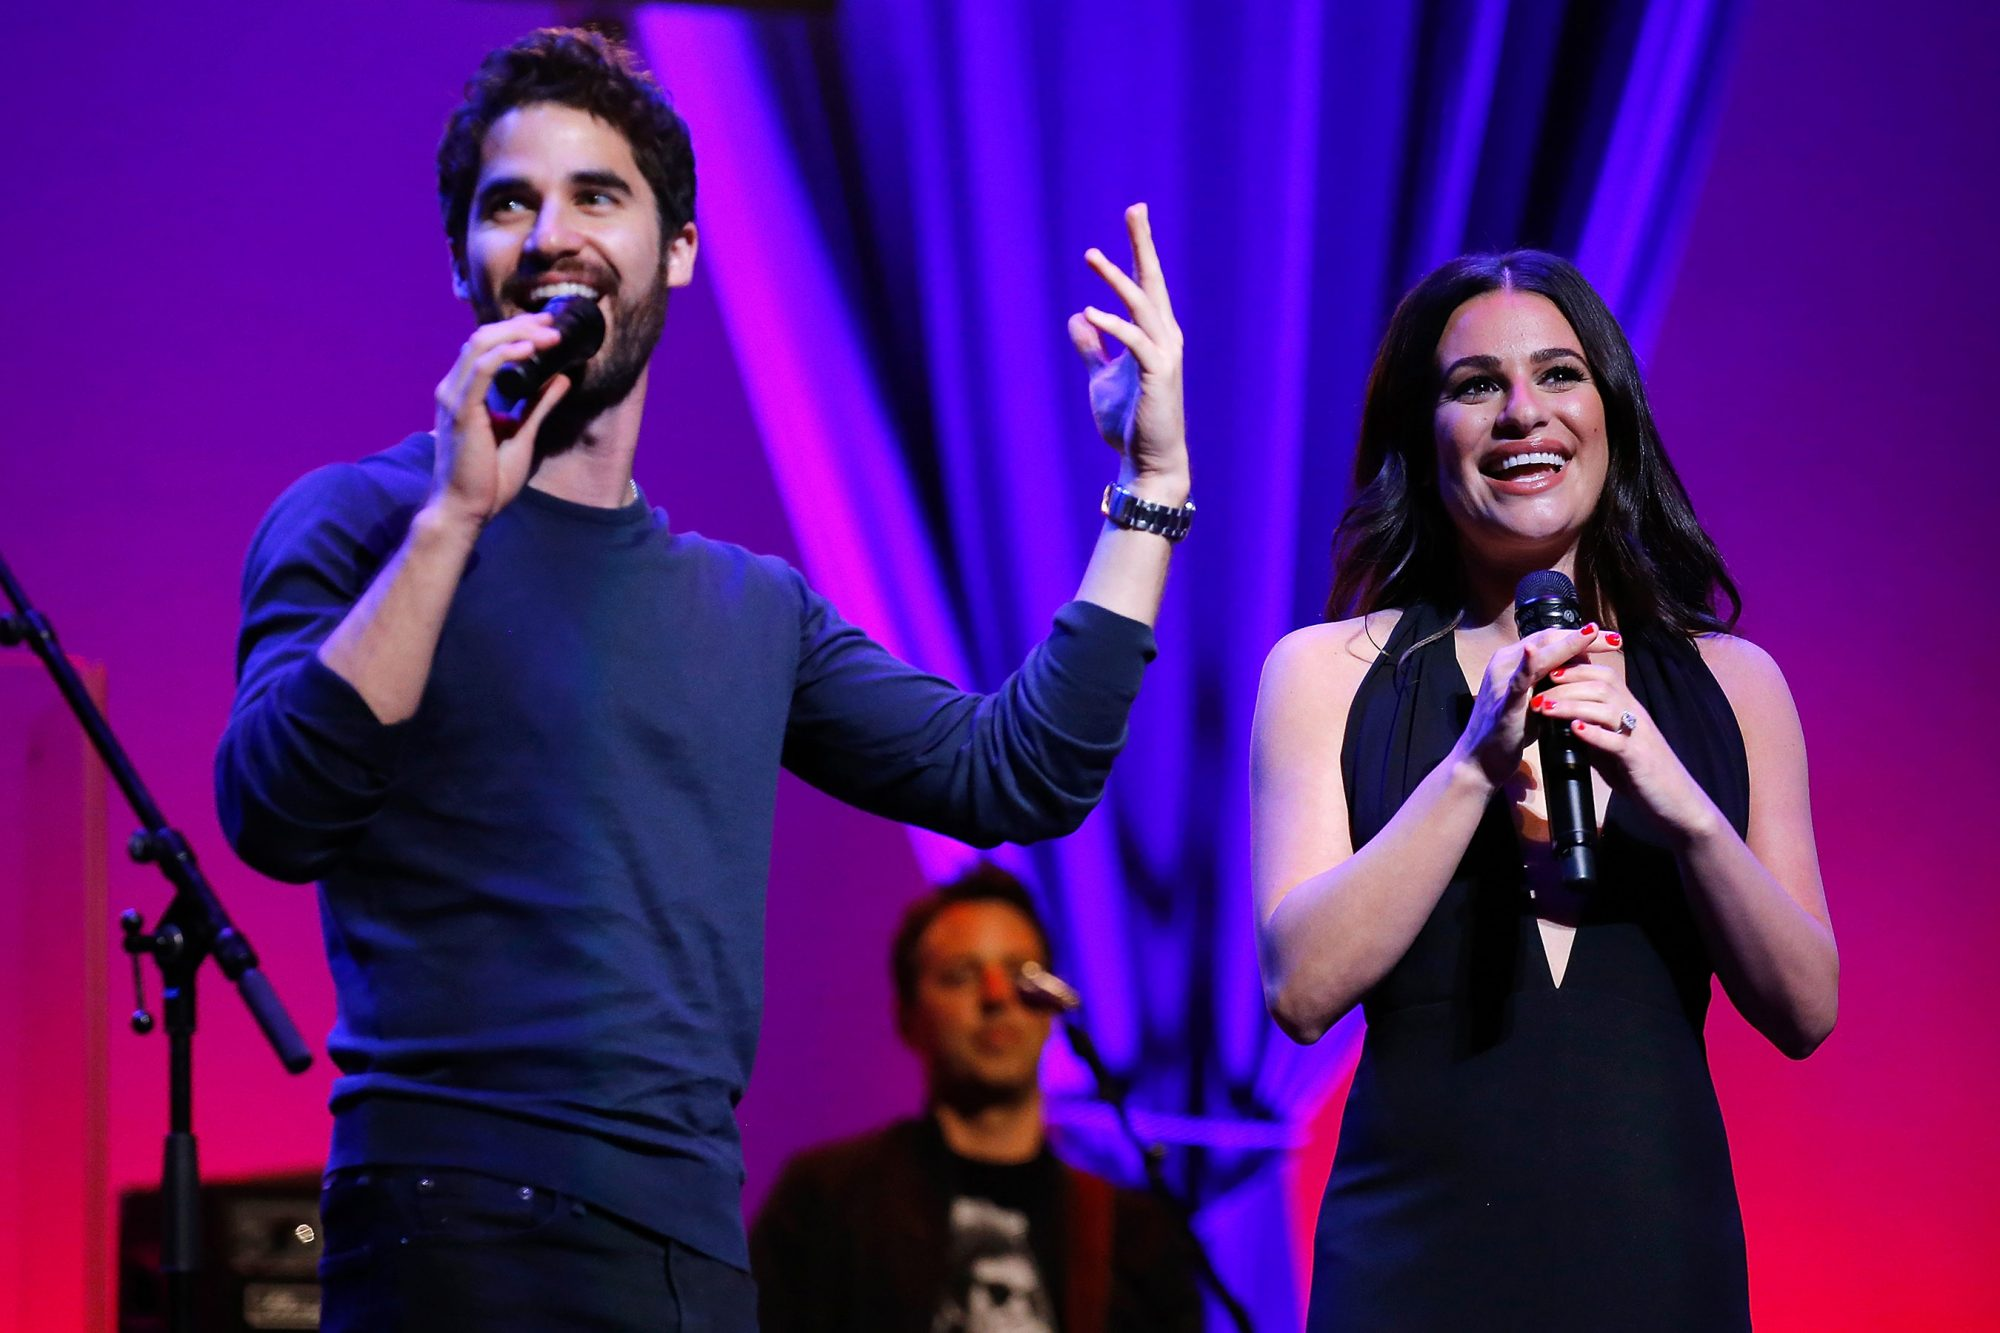 Lea Michele & Darren Criss In Concert - Newark, New Jersey